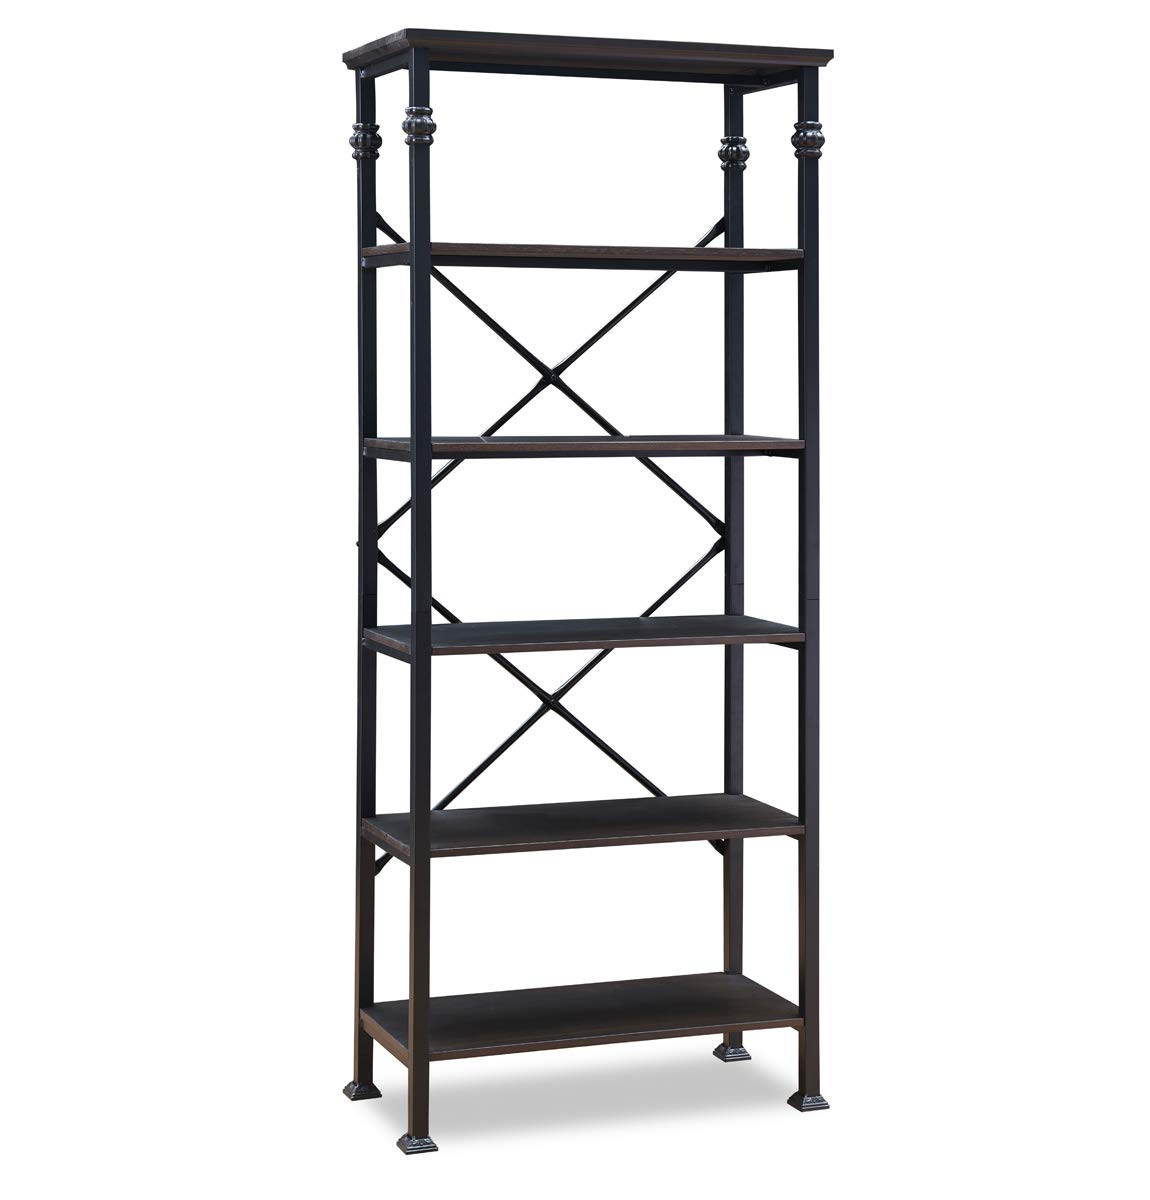 O K FURNITURE 6-Tier Open Back Bookshelf, Industrial Style Bookcases Furniture Decor Home Office, Black-Espresso